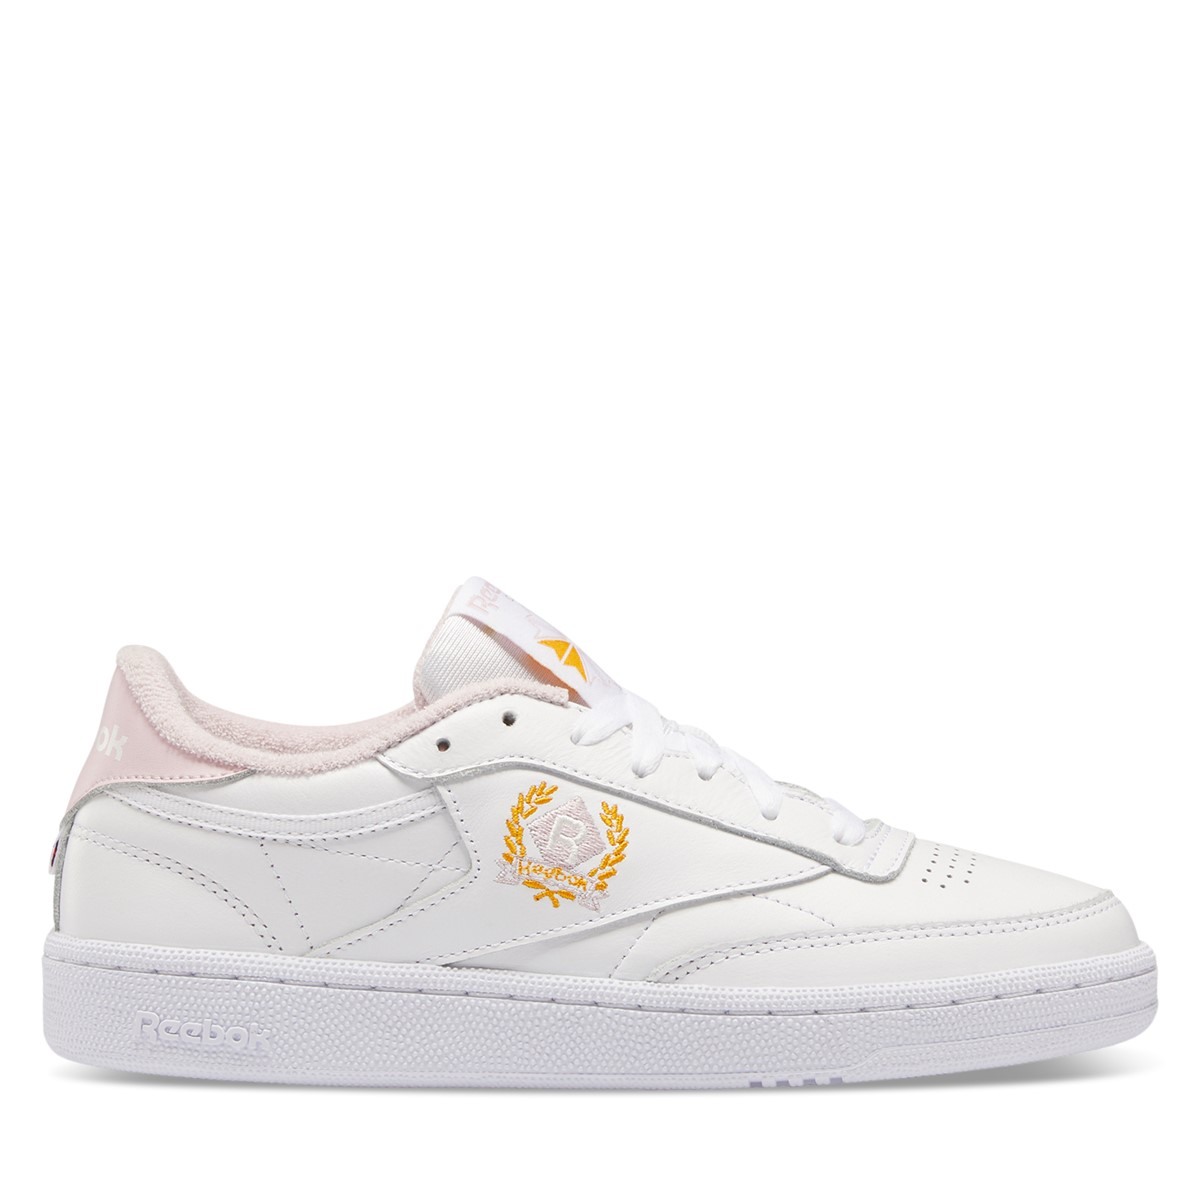 Women's Club C Crest Sneakers in White/Pink